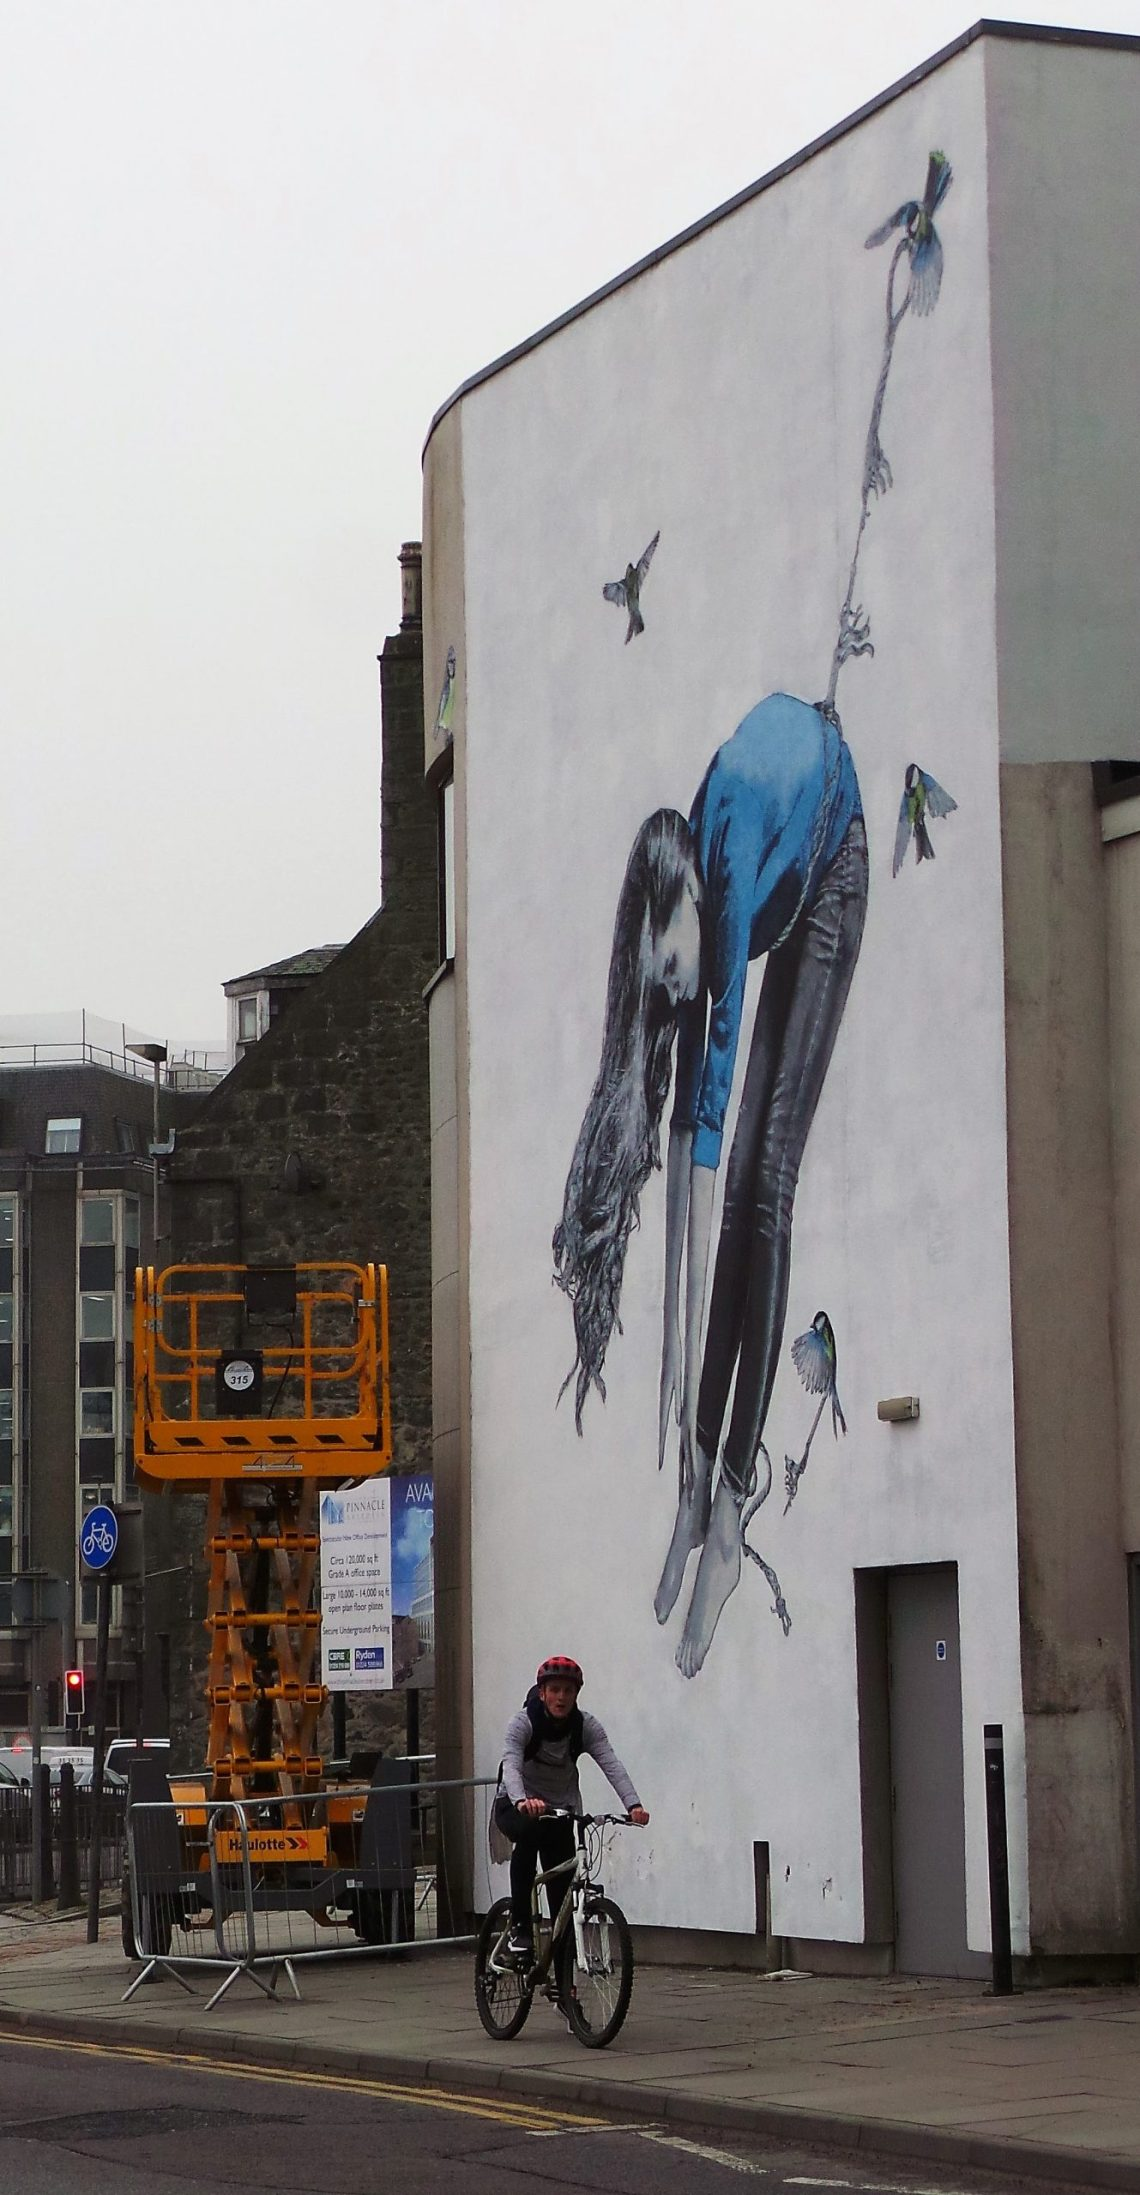 Street art by Snik as part of the Aberdeen Nuart festival.